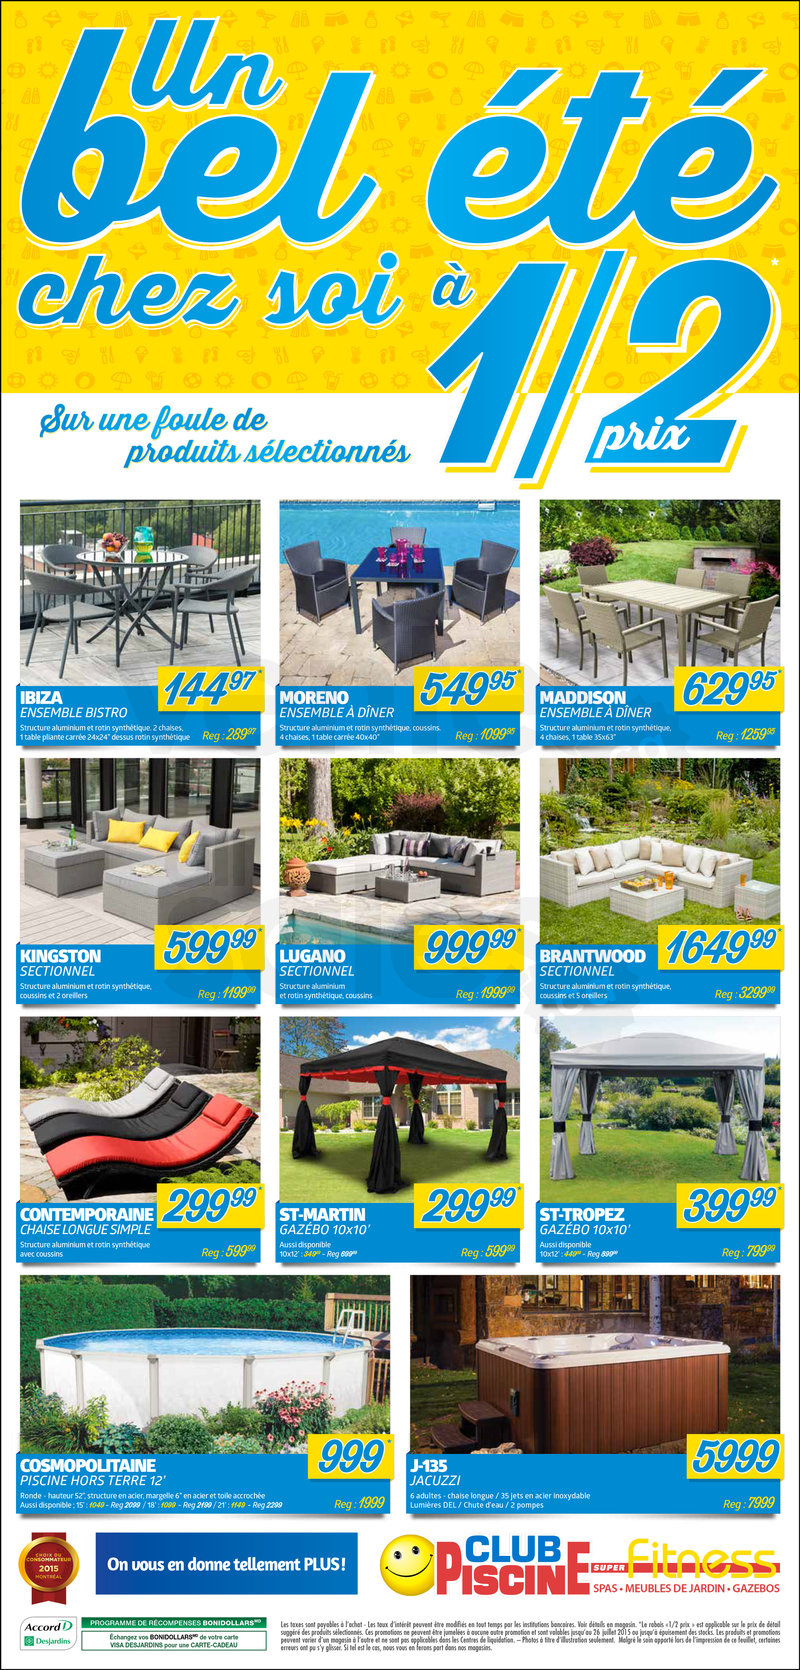 Club piscine 50 produits s lectionn s for Club piscine brossard qc